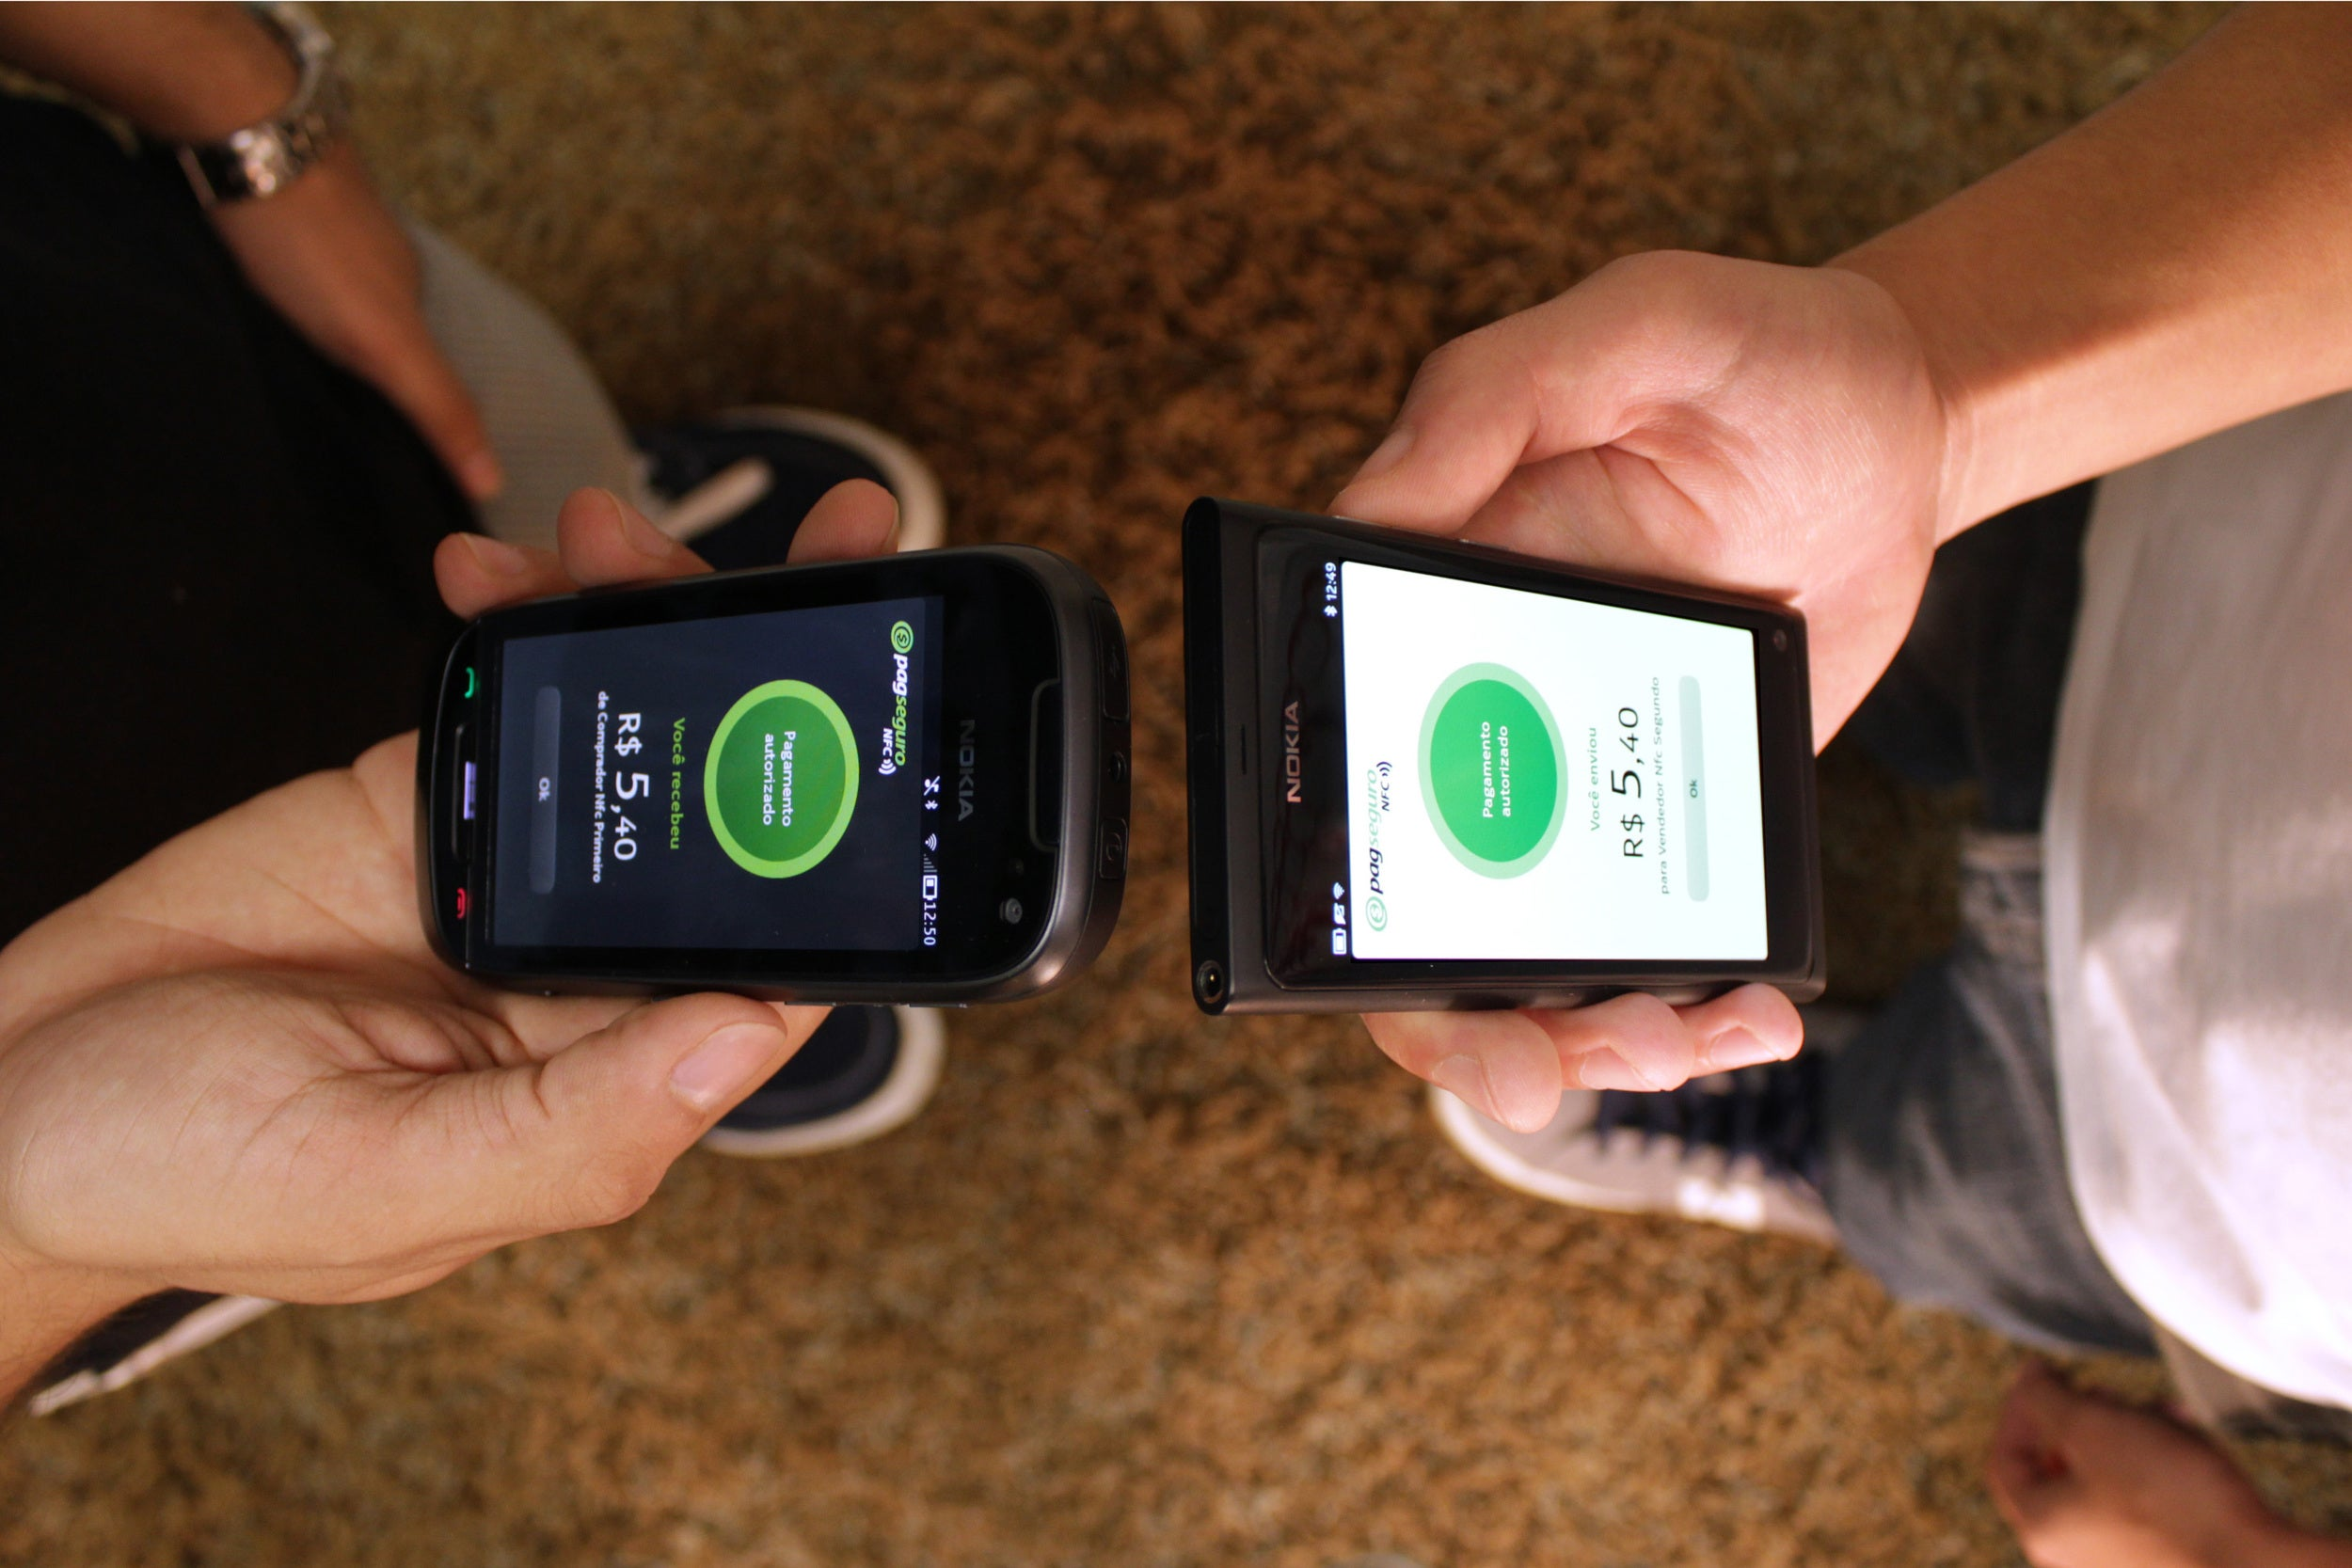 Two people, standing face to face, conducting peer-to-peer payment with their mobile phones.